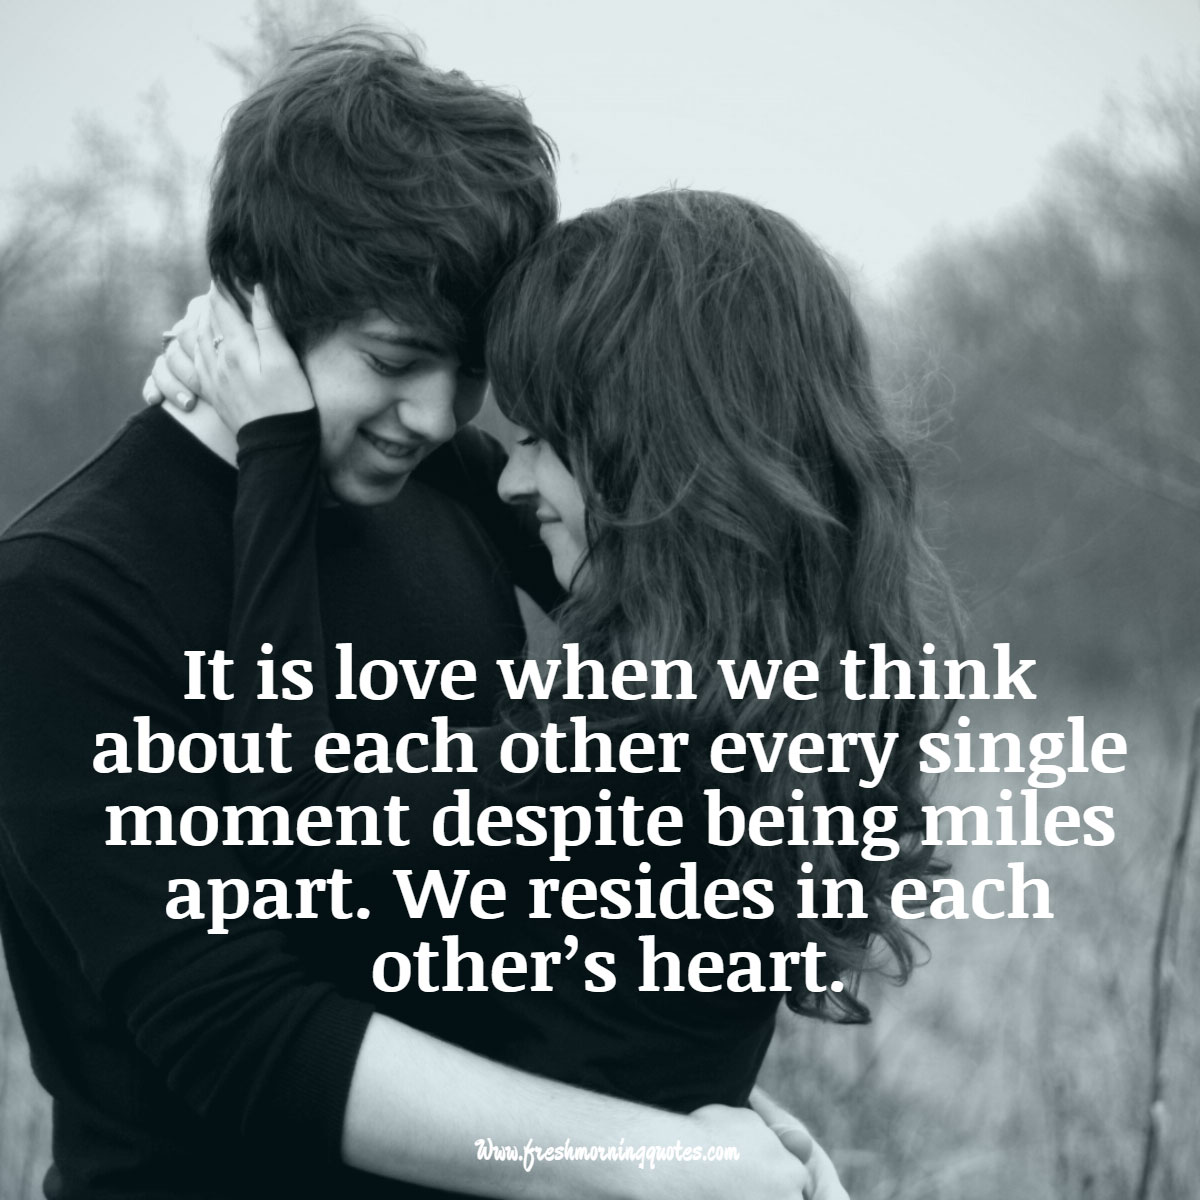 it is love when we think about each other